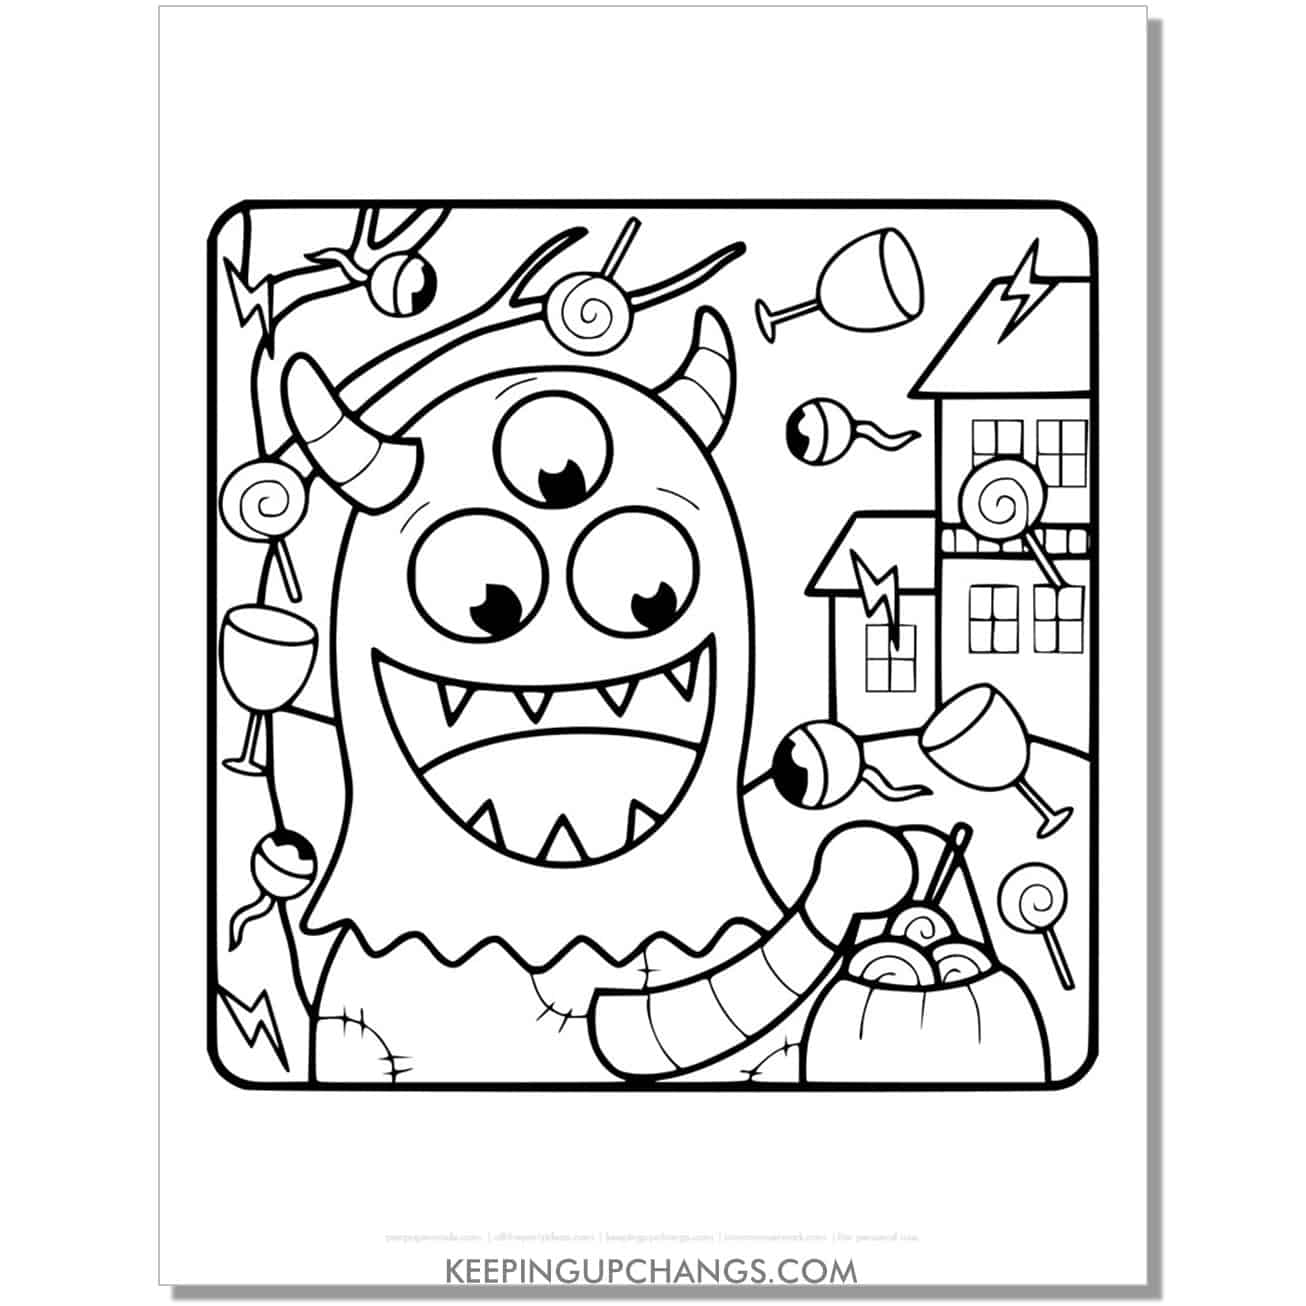 free monster trick or treat halloween coloring page.